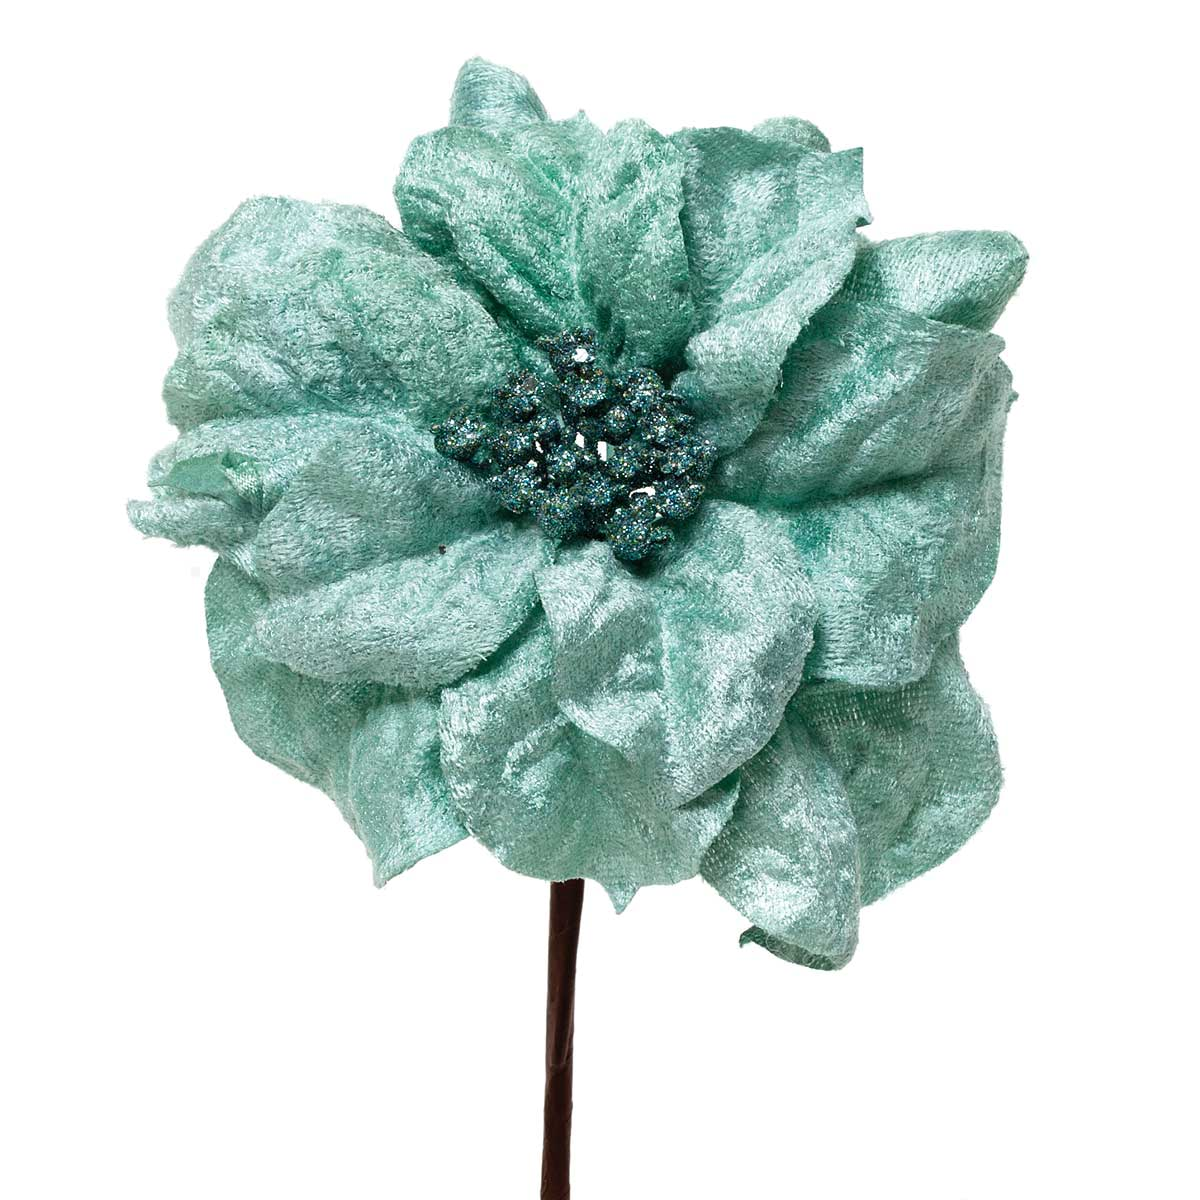 SILK ROSETTE POINSETTIA AQUA/TEAL BLUE